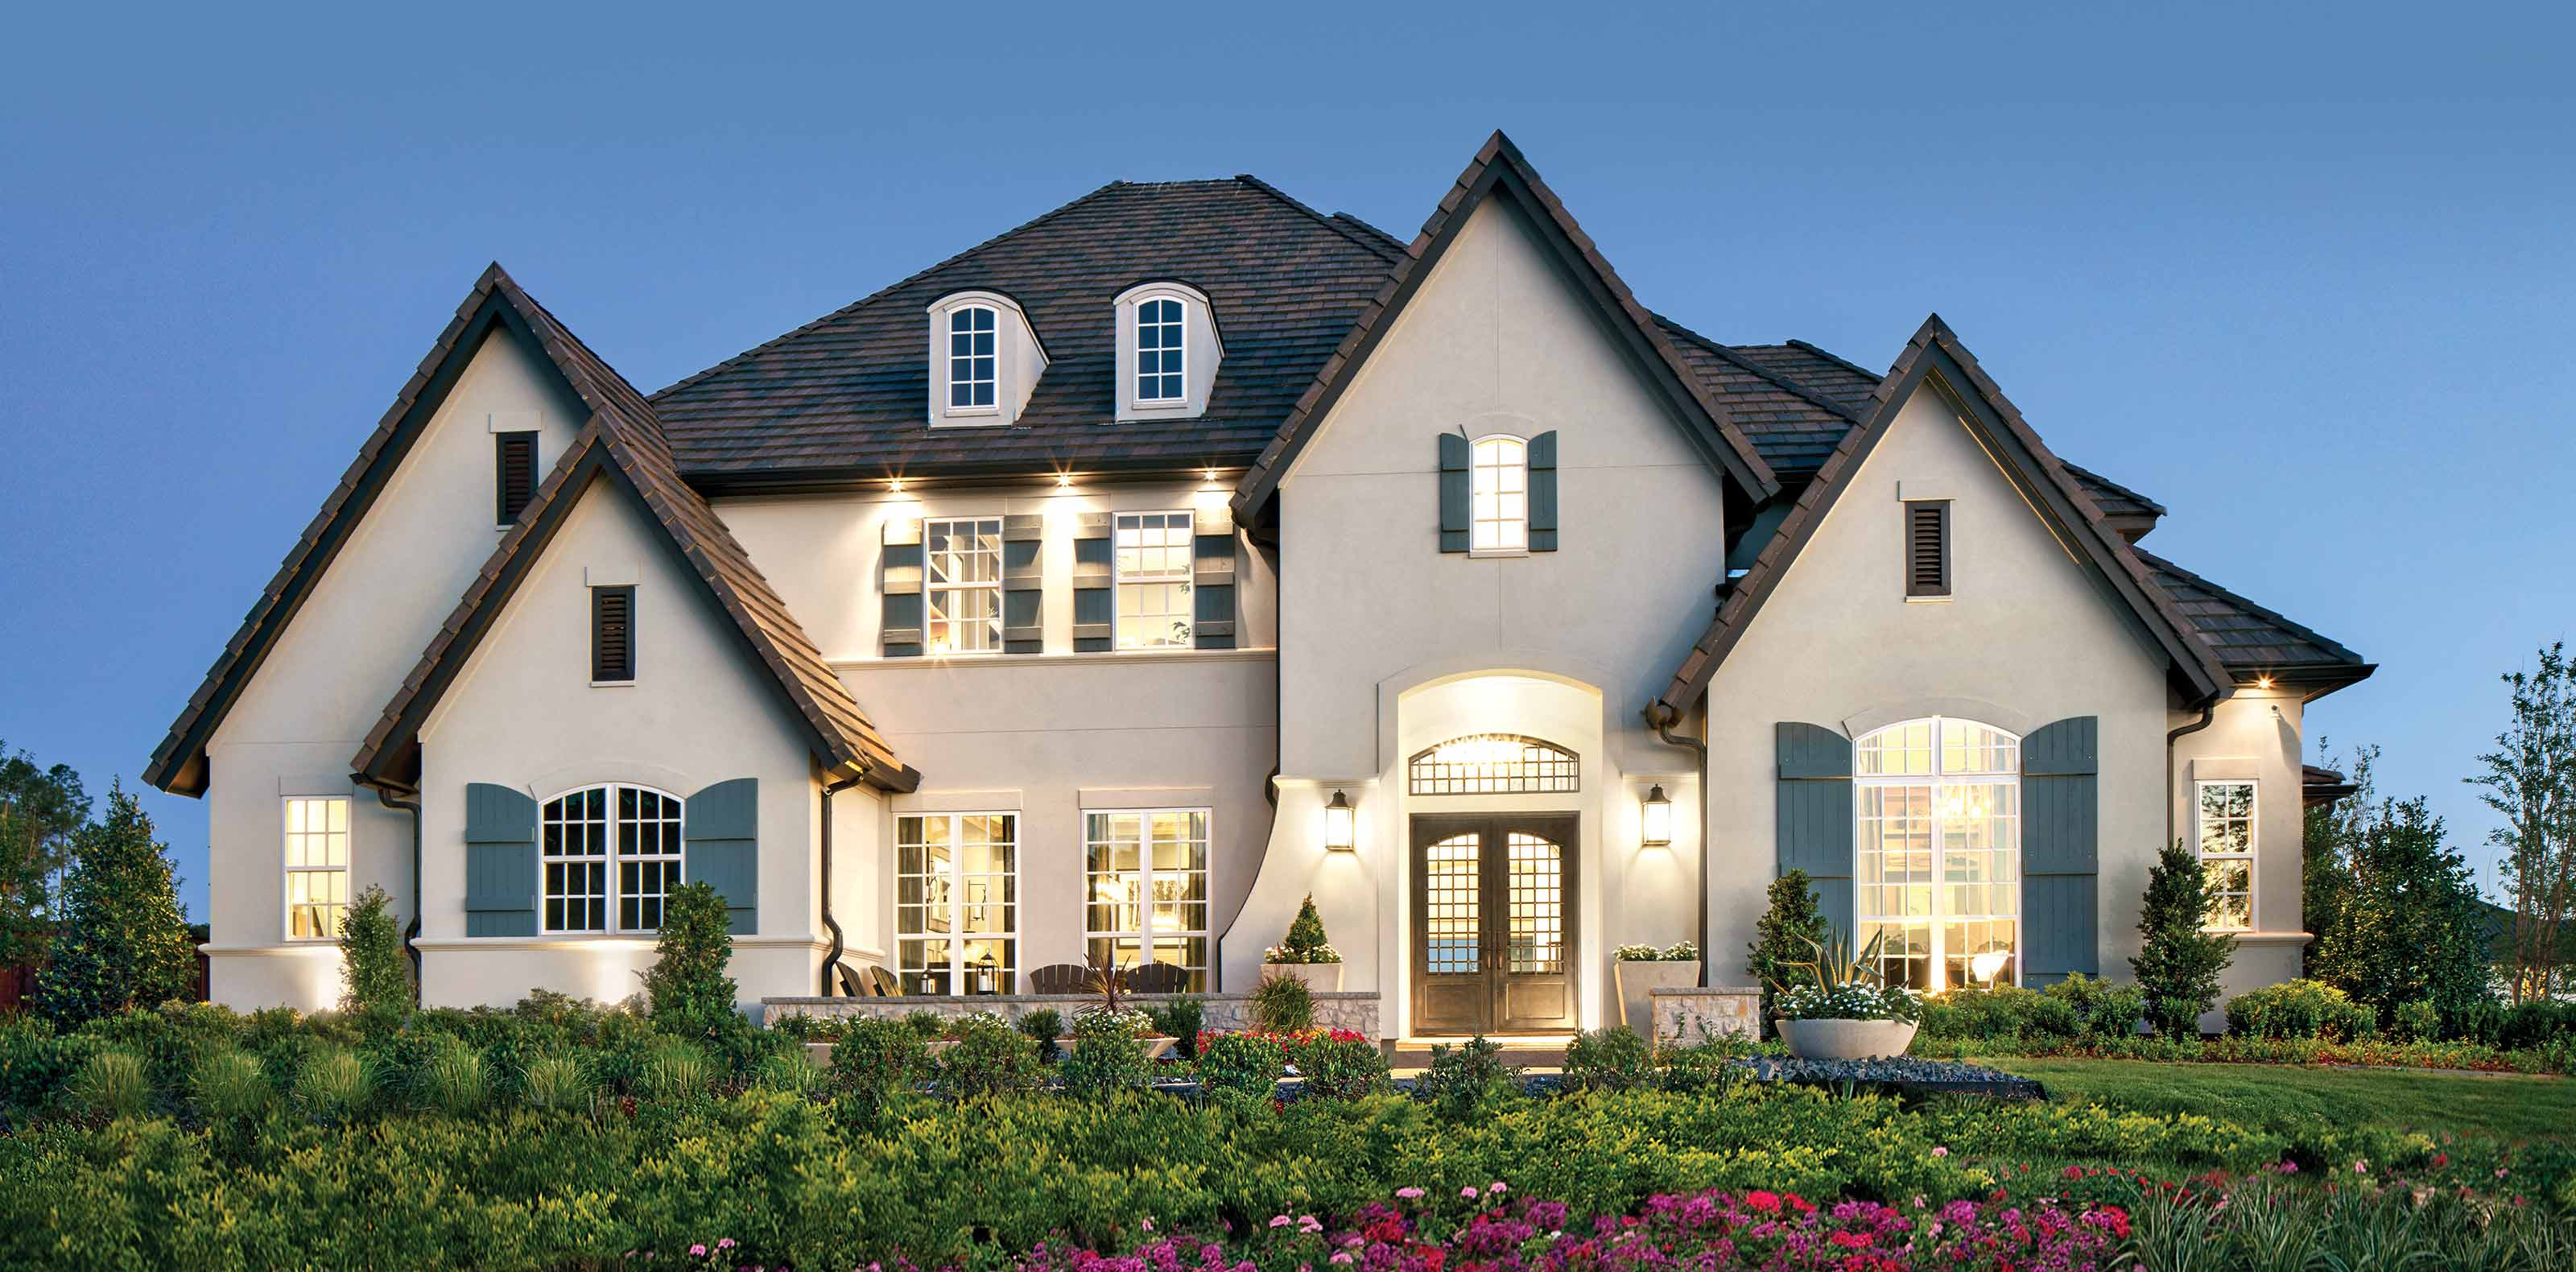 The Sandhaven Chateau at Southlake Meadows in Southlake, Texas